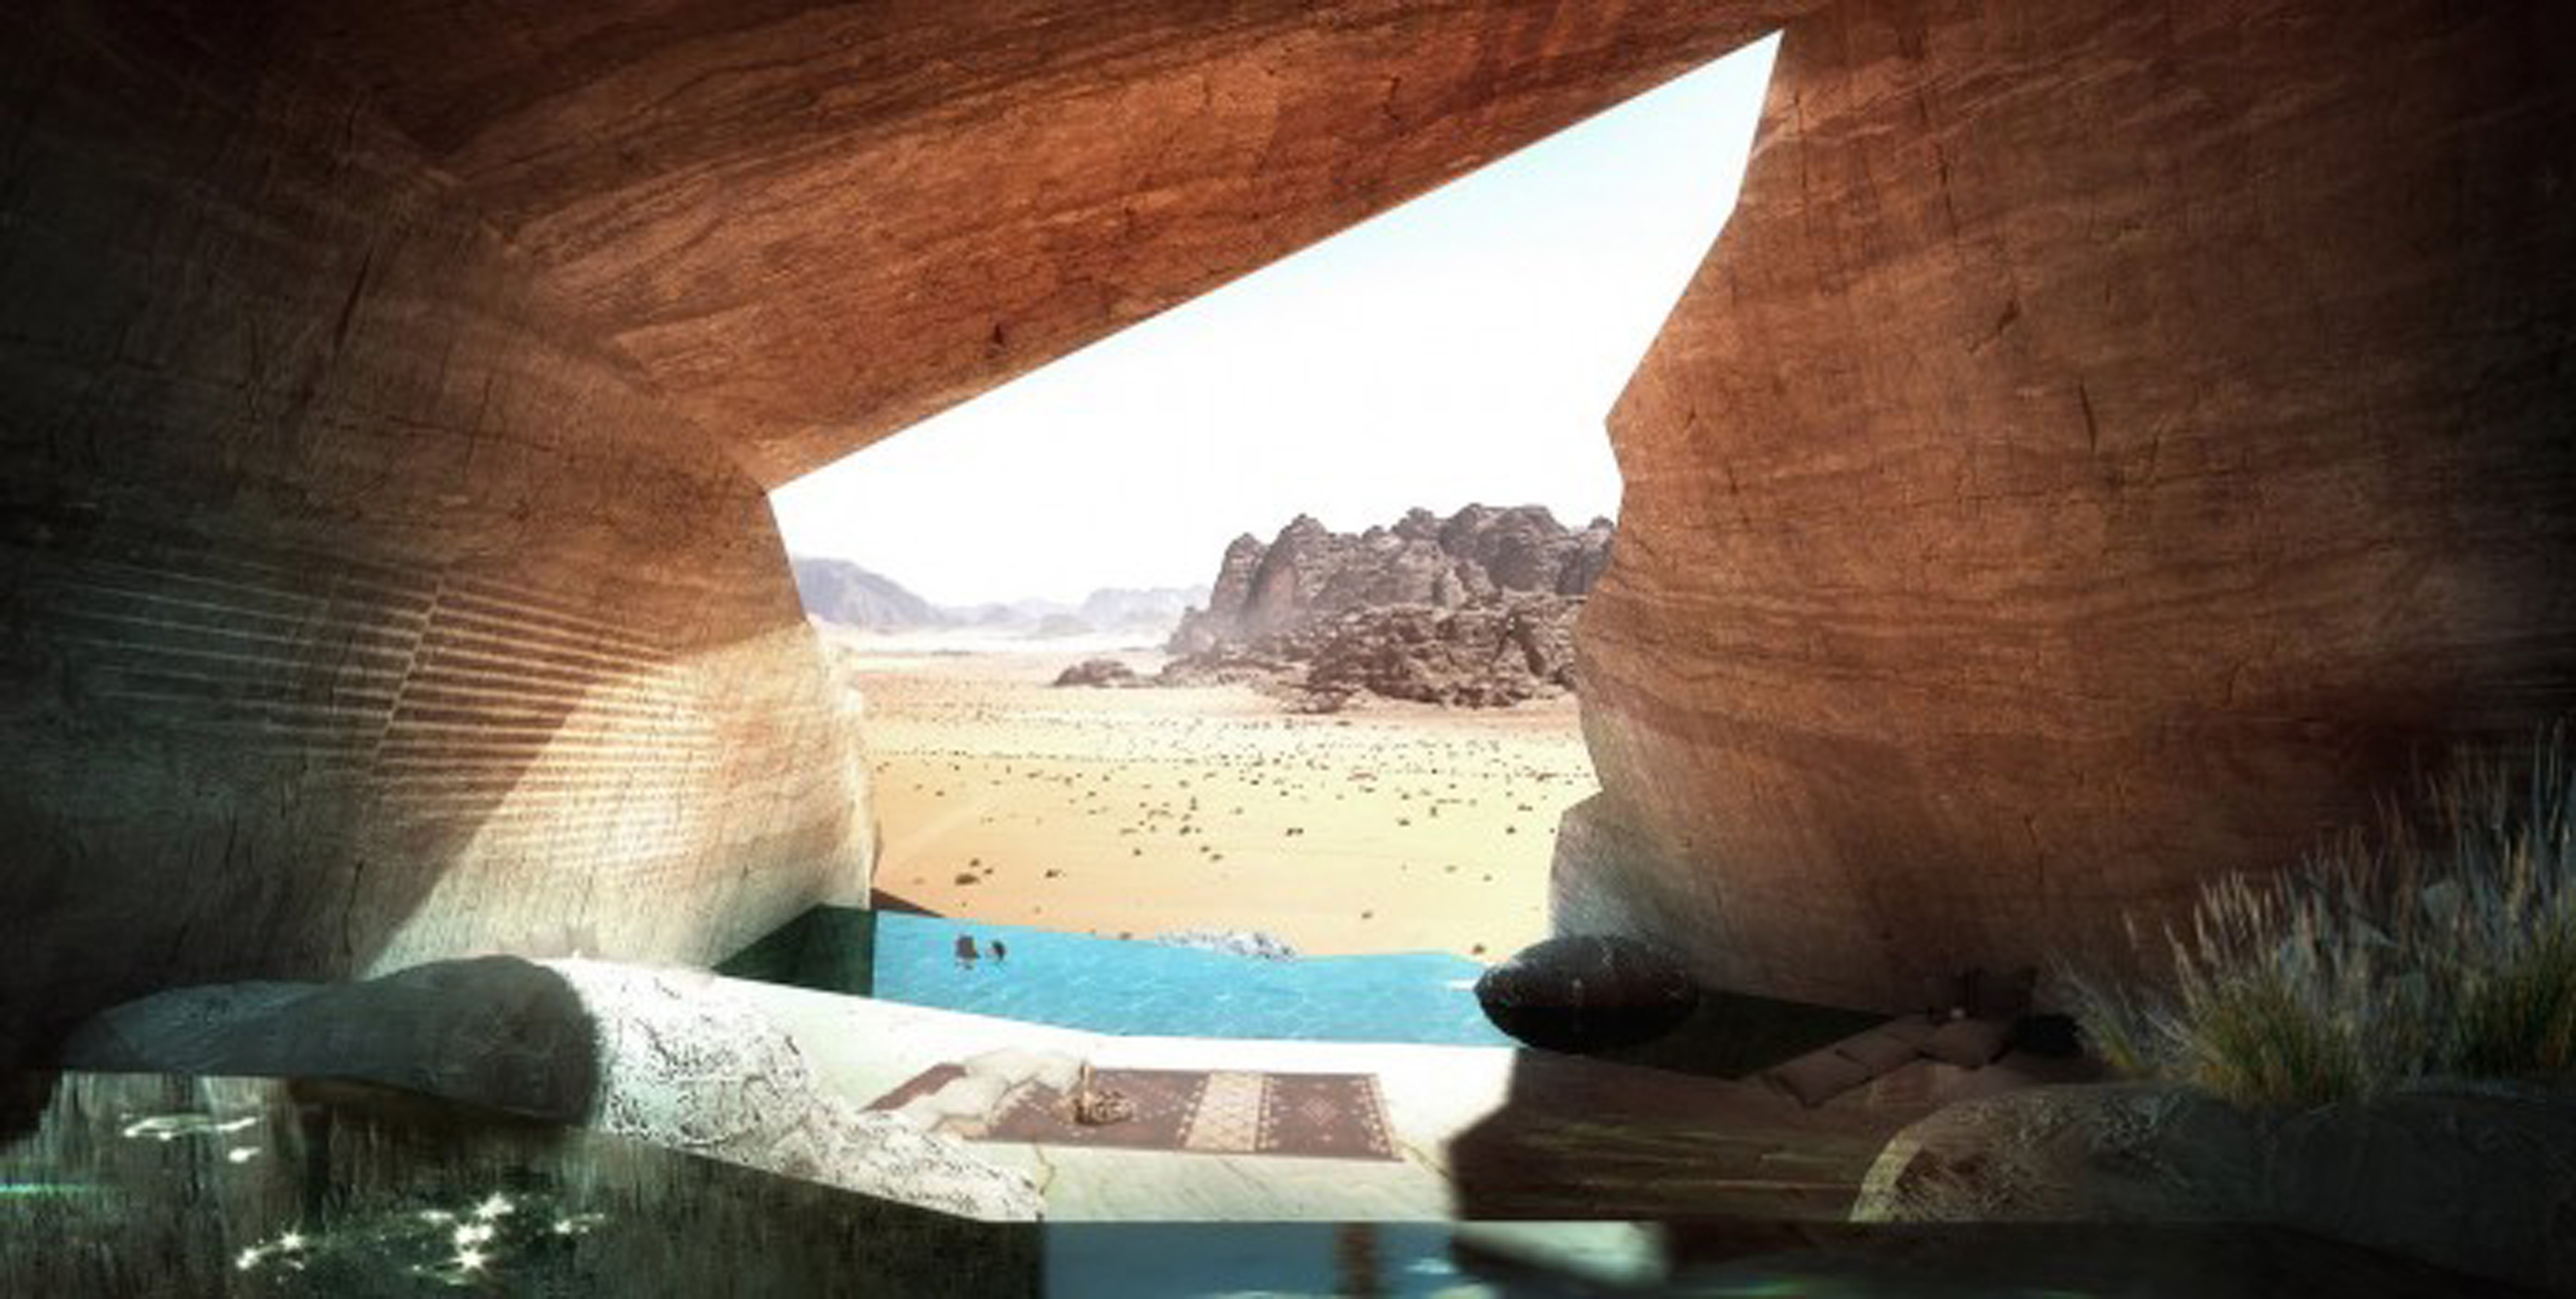 Apartments Spectacular View Of Wadi Rum Desert Lodges By Chad Oppenheim Awesome Wadi Rum Resort Ins (Image 44 of 45)